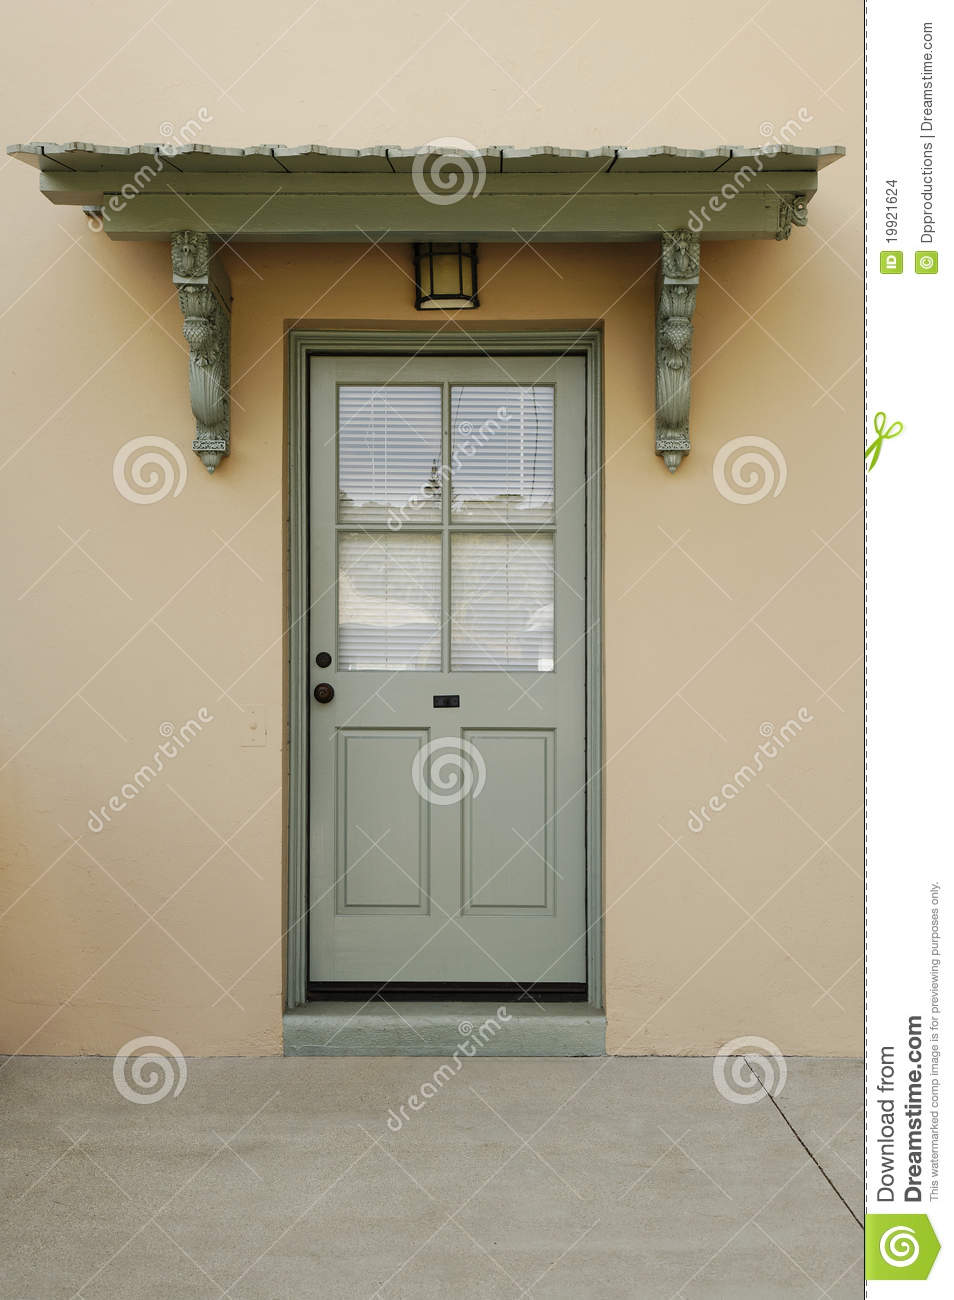 royalty free stock photo download exterior of a back door - Exterior Back Doors